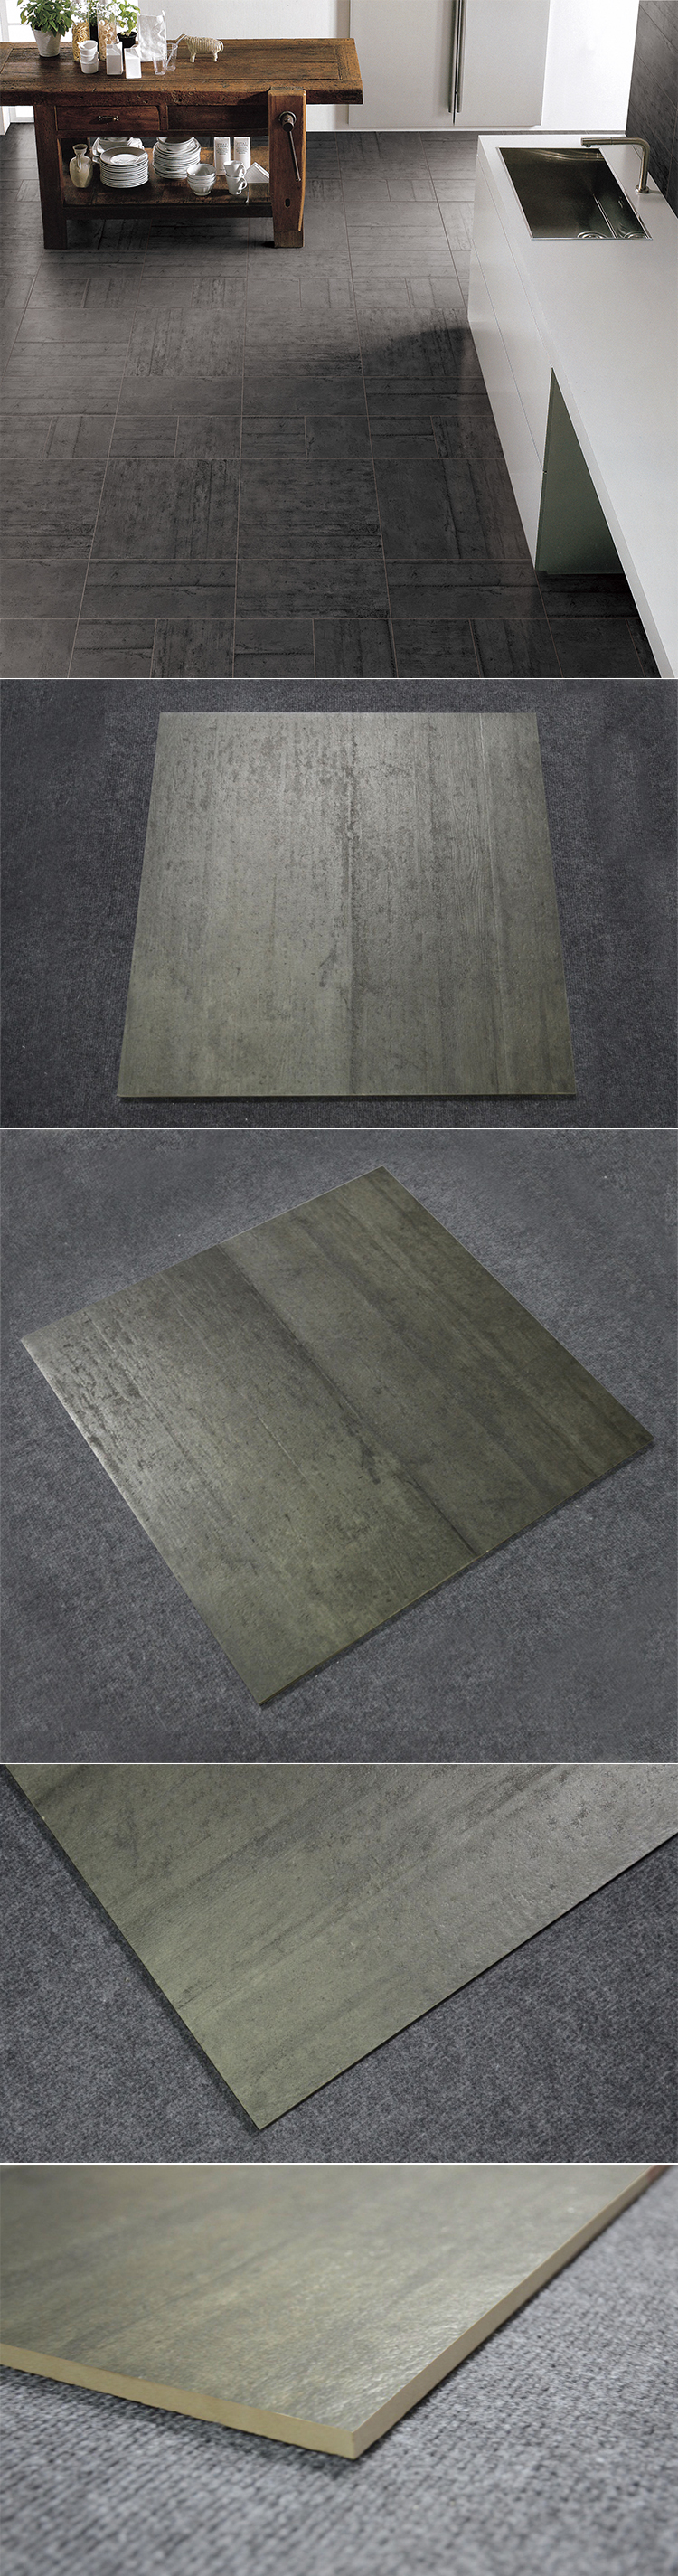 HCM6009 factory non slip bathroom floor tile stickers